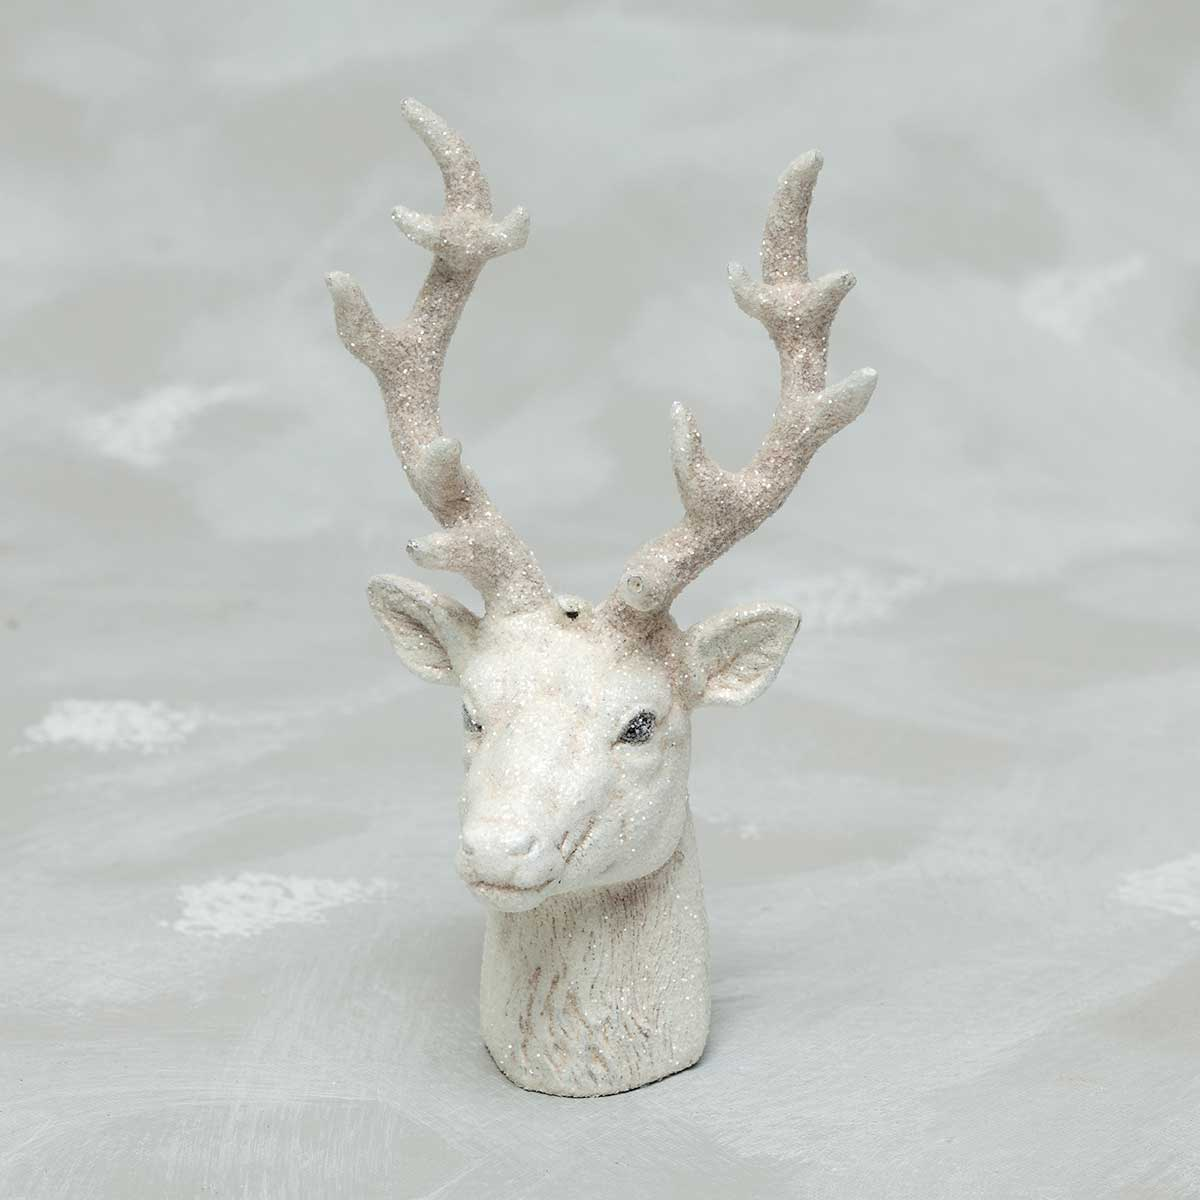 White Porcelain Deer Head New Zia Bella Fashions Fashion Jewelry Necklace